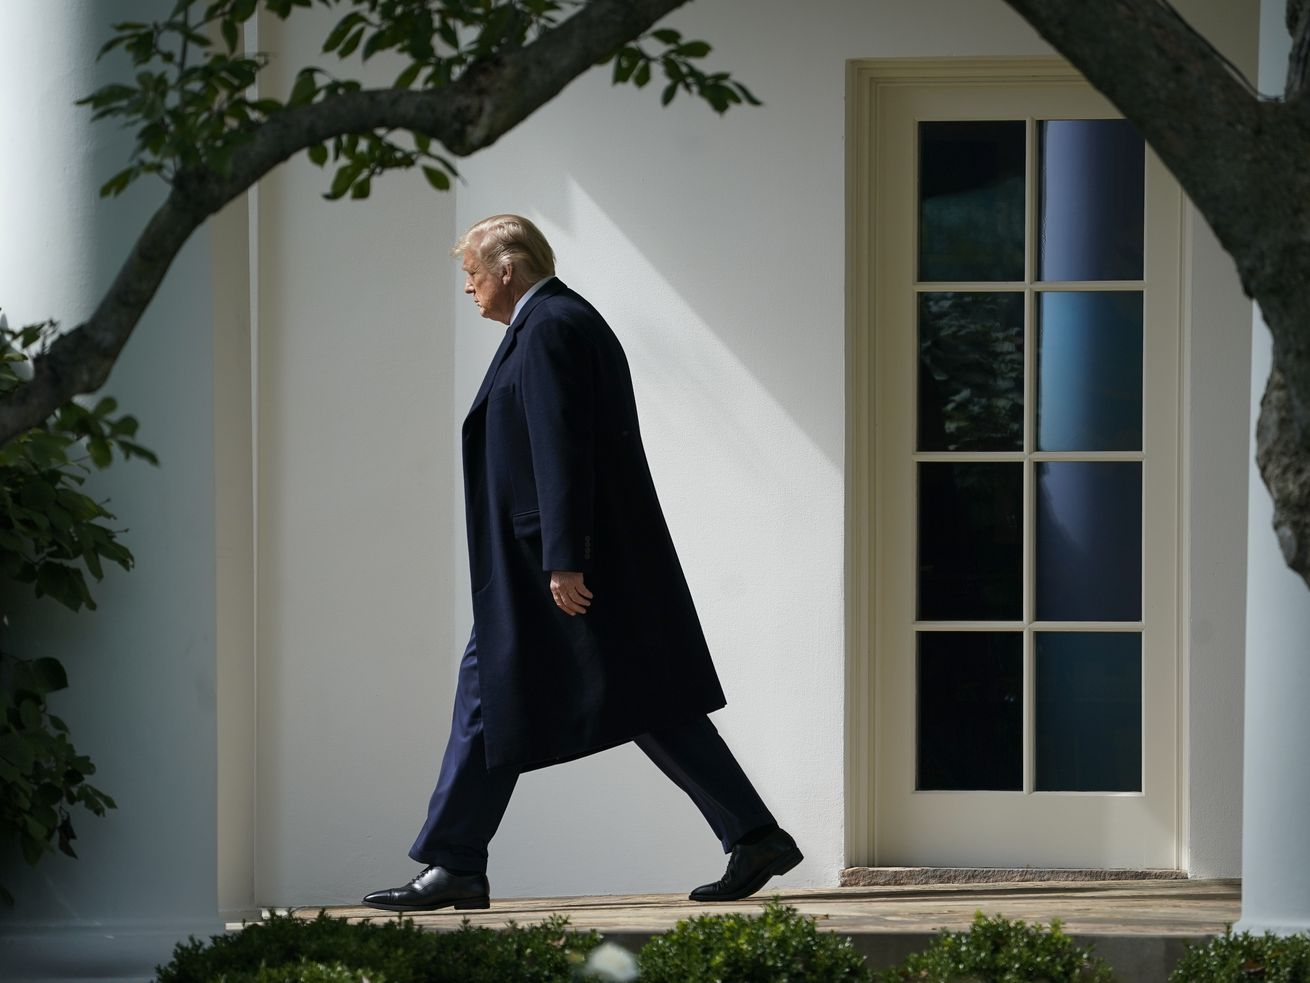 President Trump walking alongside the White House.